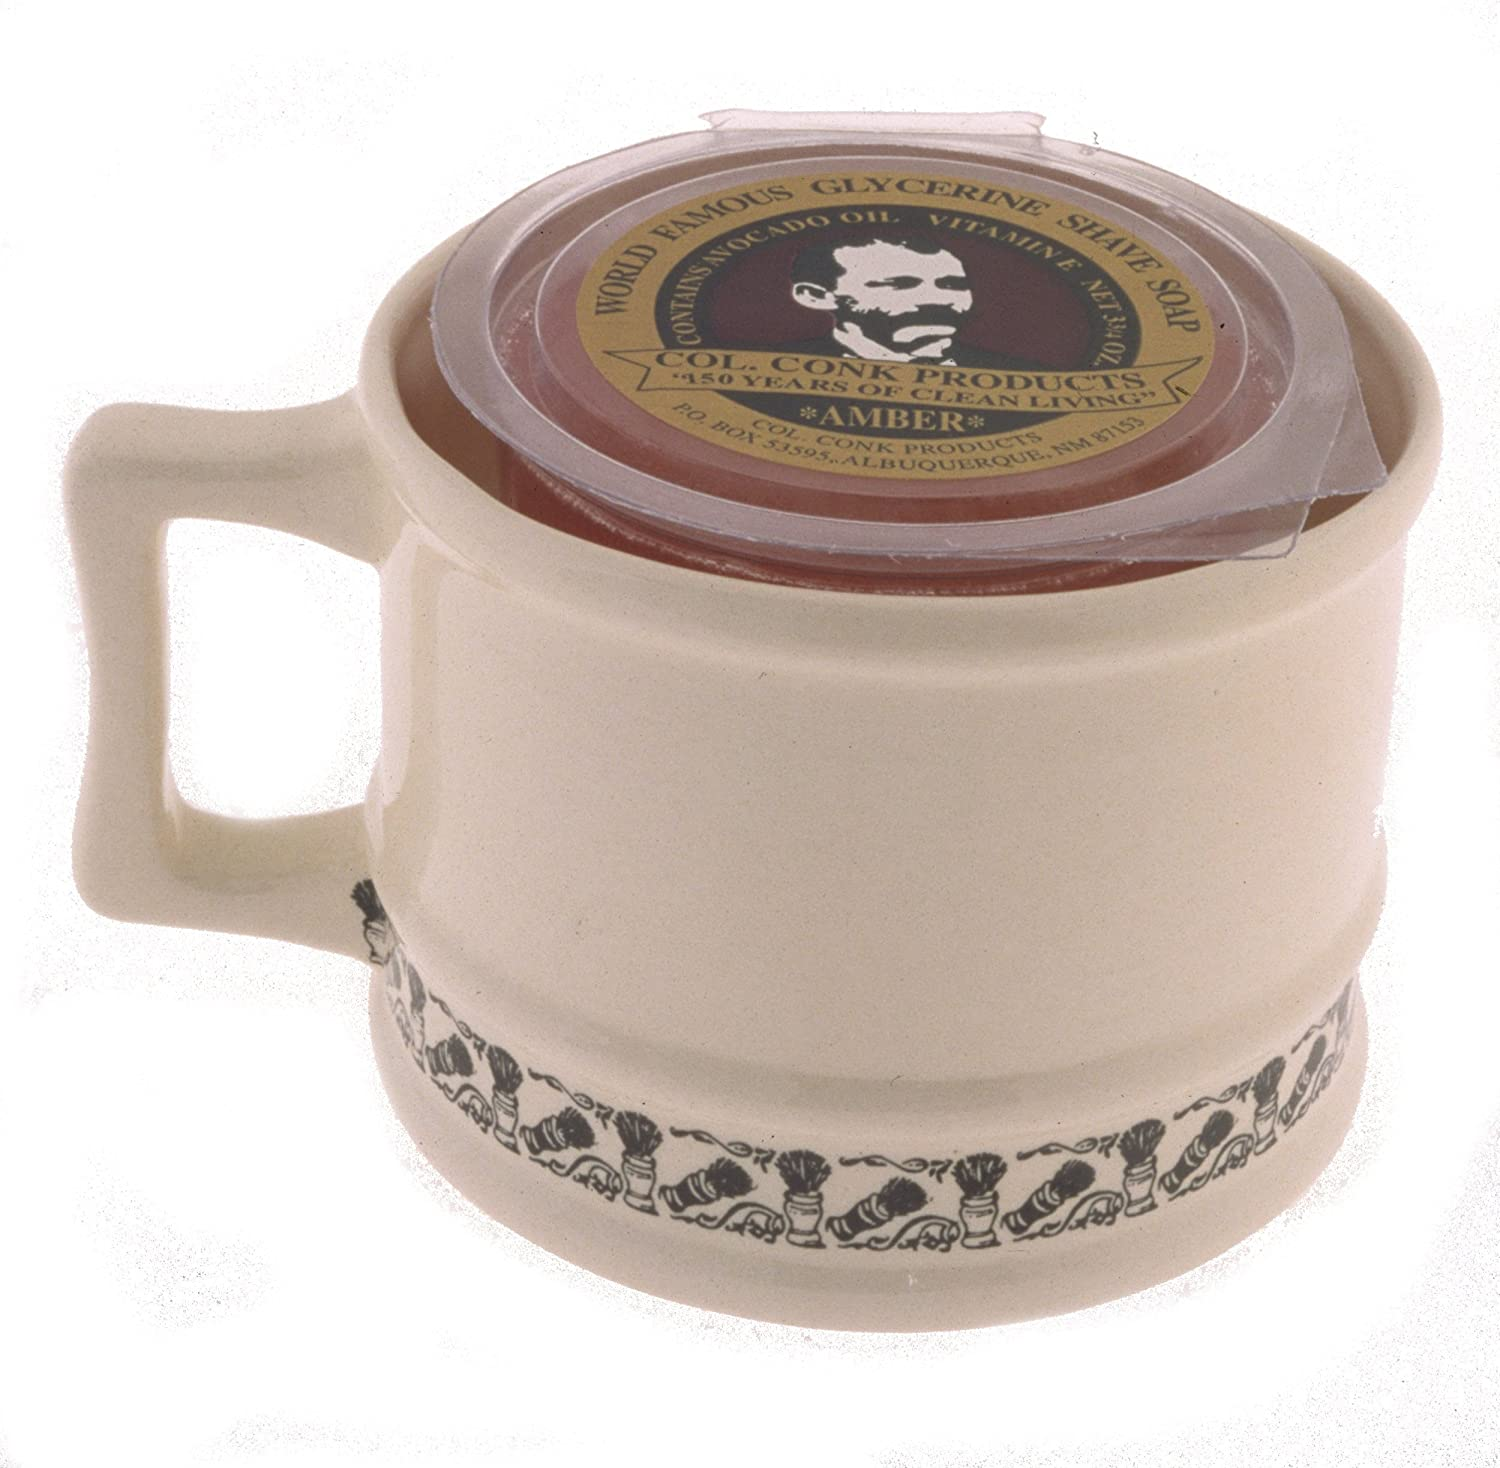 Col. Conk Products Model 129 Super Shave Mug with Soap